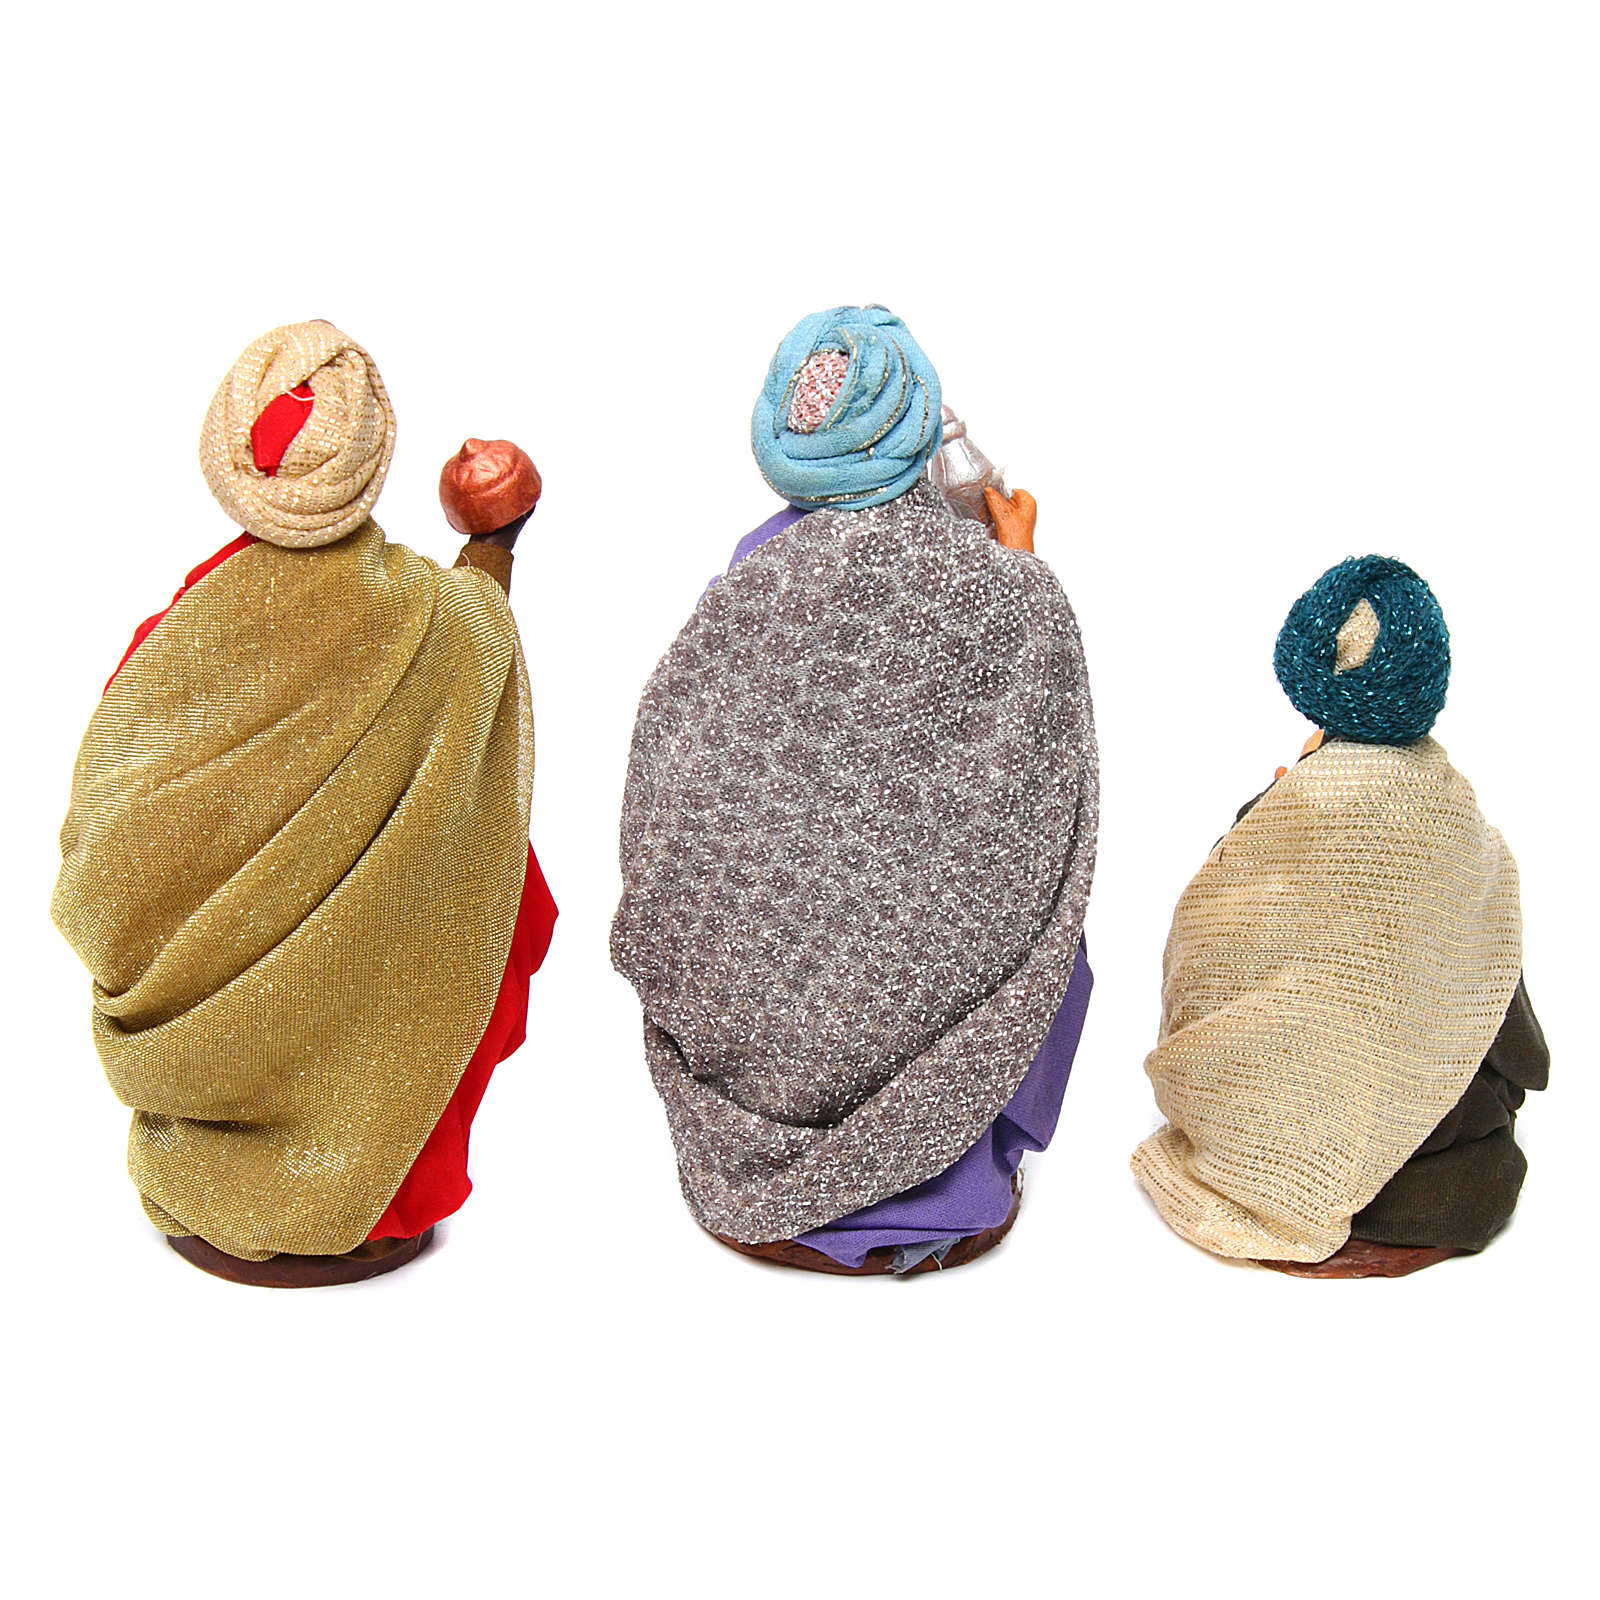 Neapolitan nativity scene Three Wise Men 12 cm 4